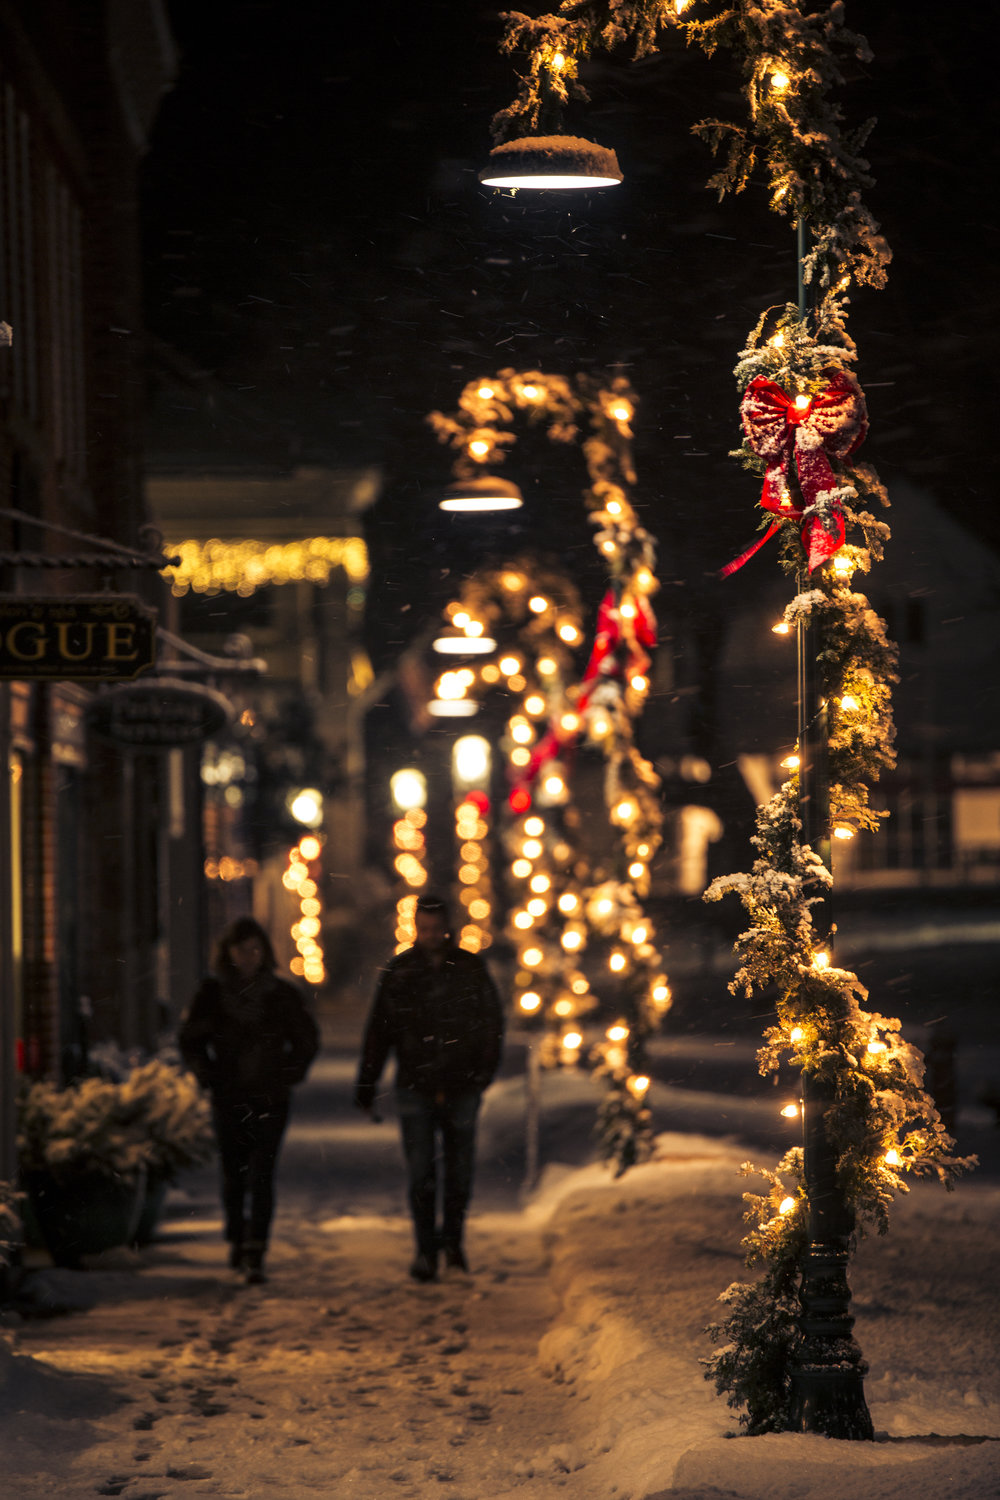 Downtown Petoskey Christmas-1.jpg